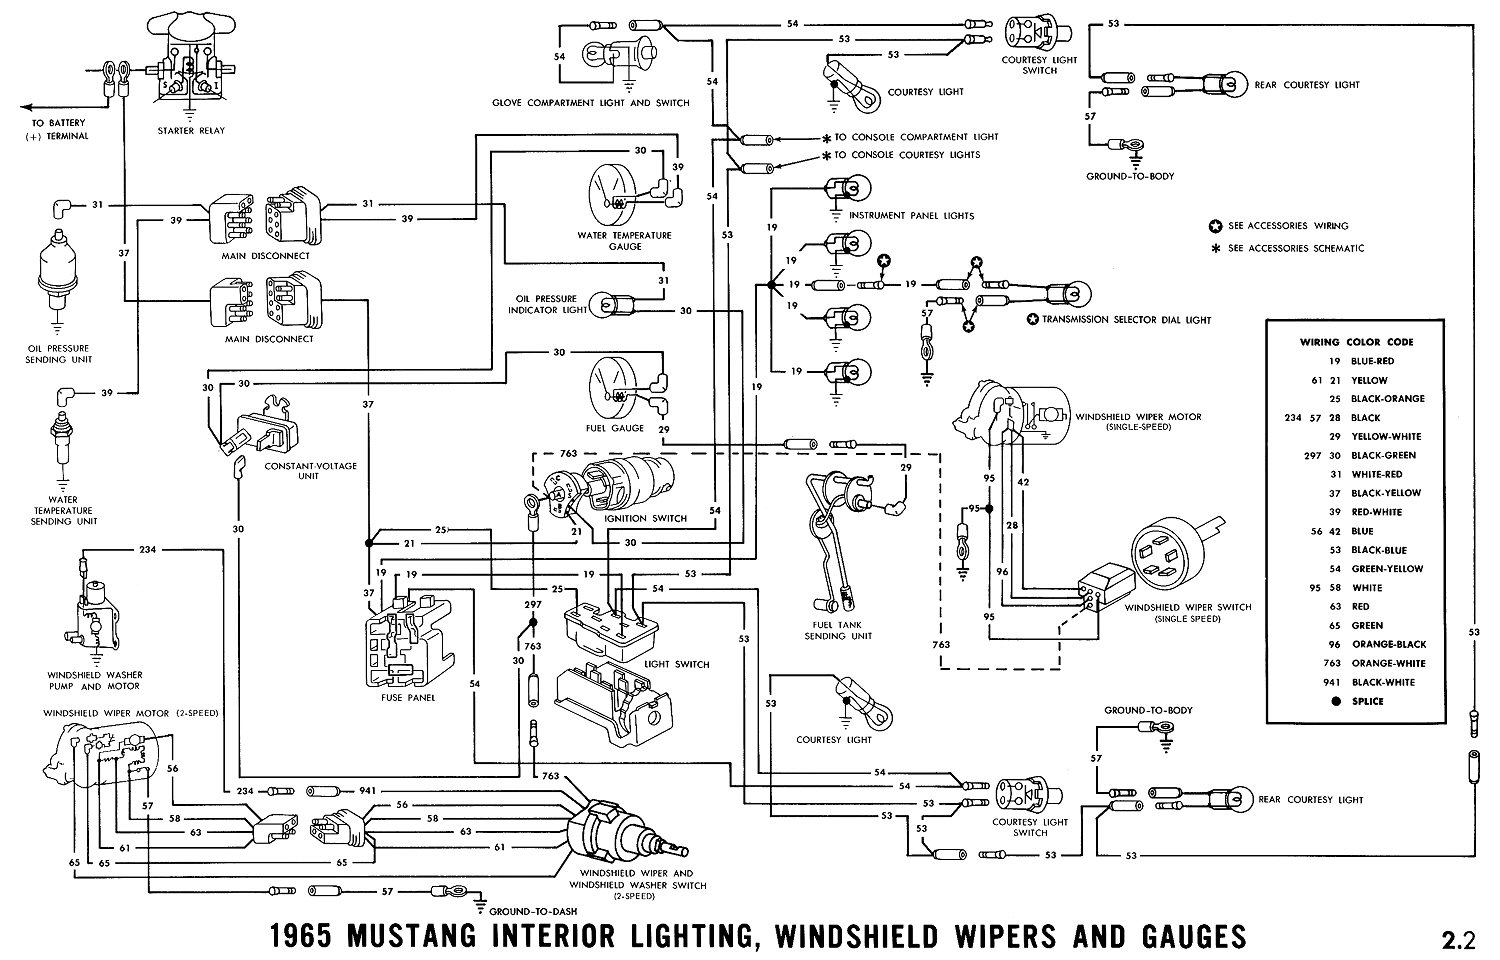 hight resolution of 1968 cadillac dash wiring diagram detailed schematics diagram rh lelandlutheran com mercury 500 outboard wiring diagram